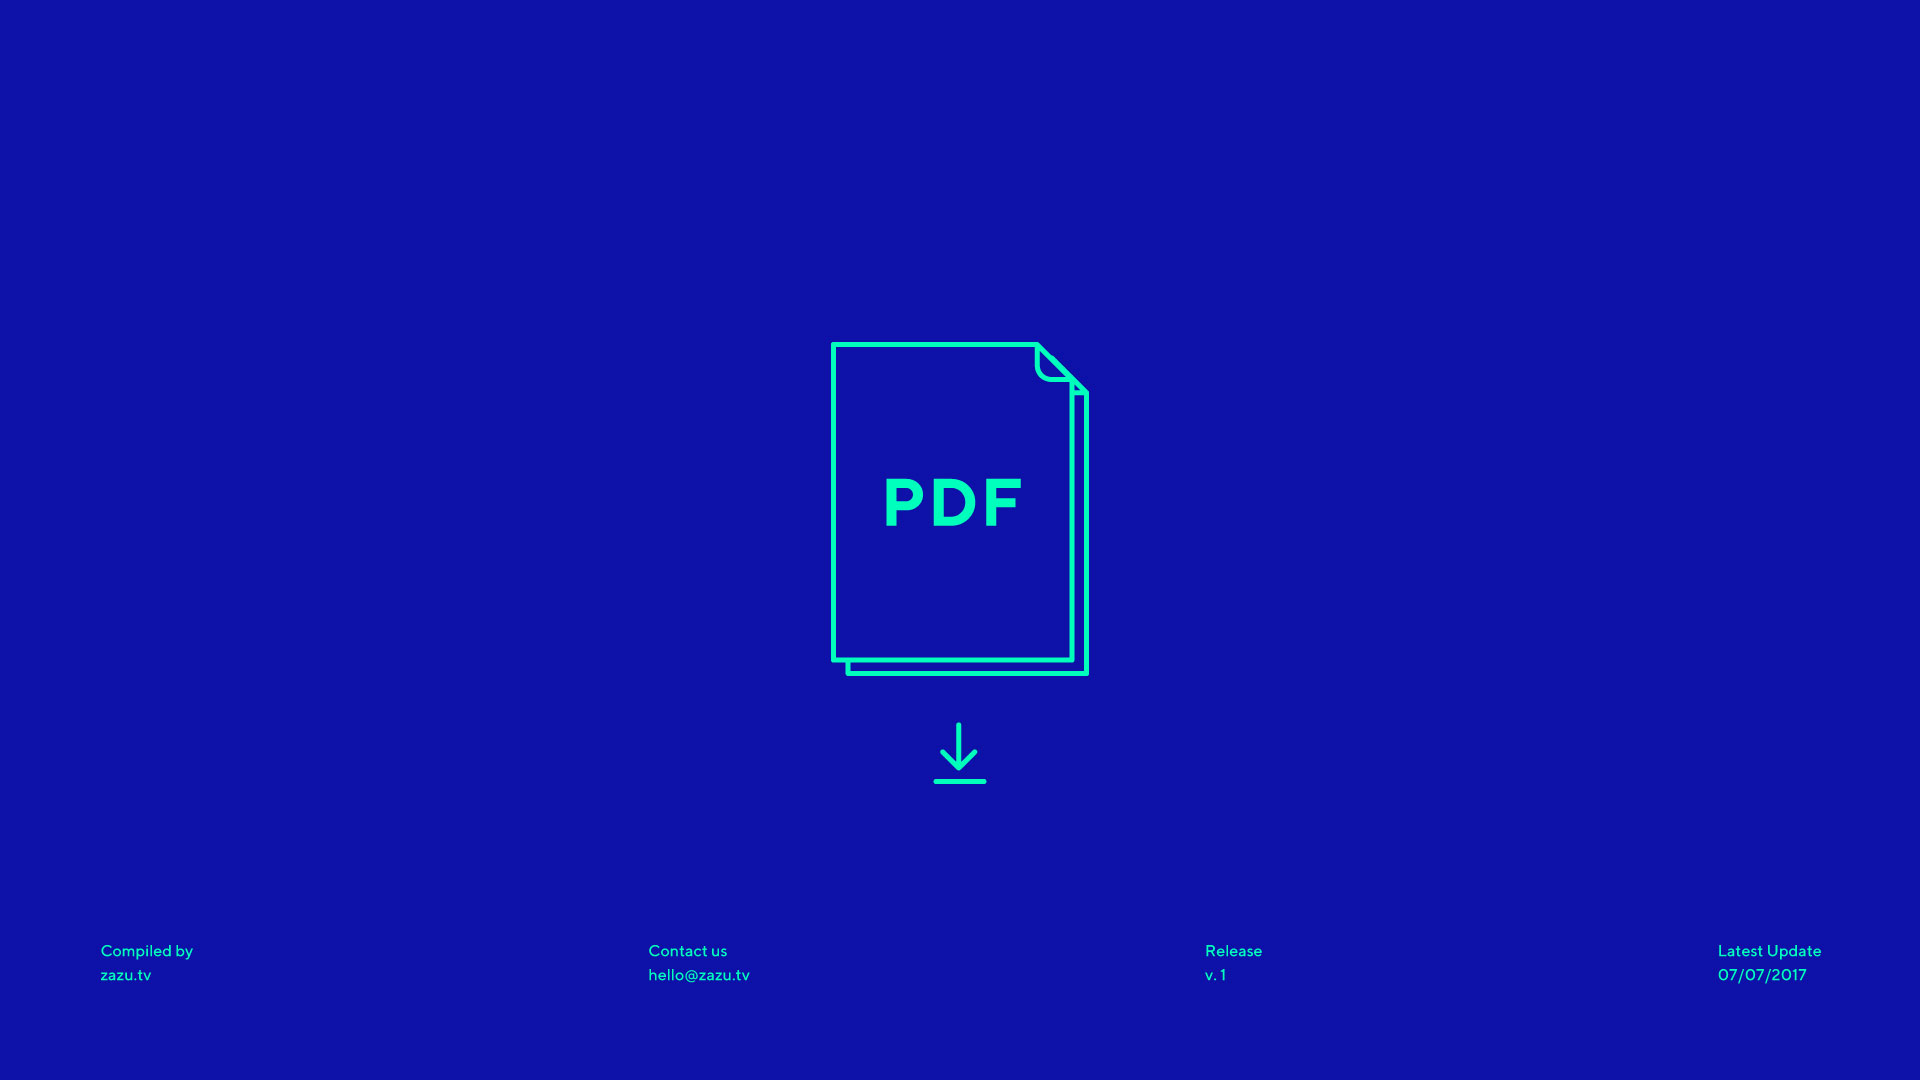 How to prepare Illustrator files for After Effects